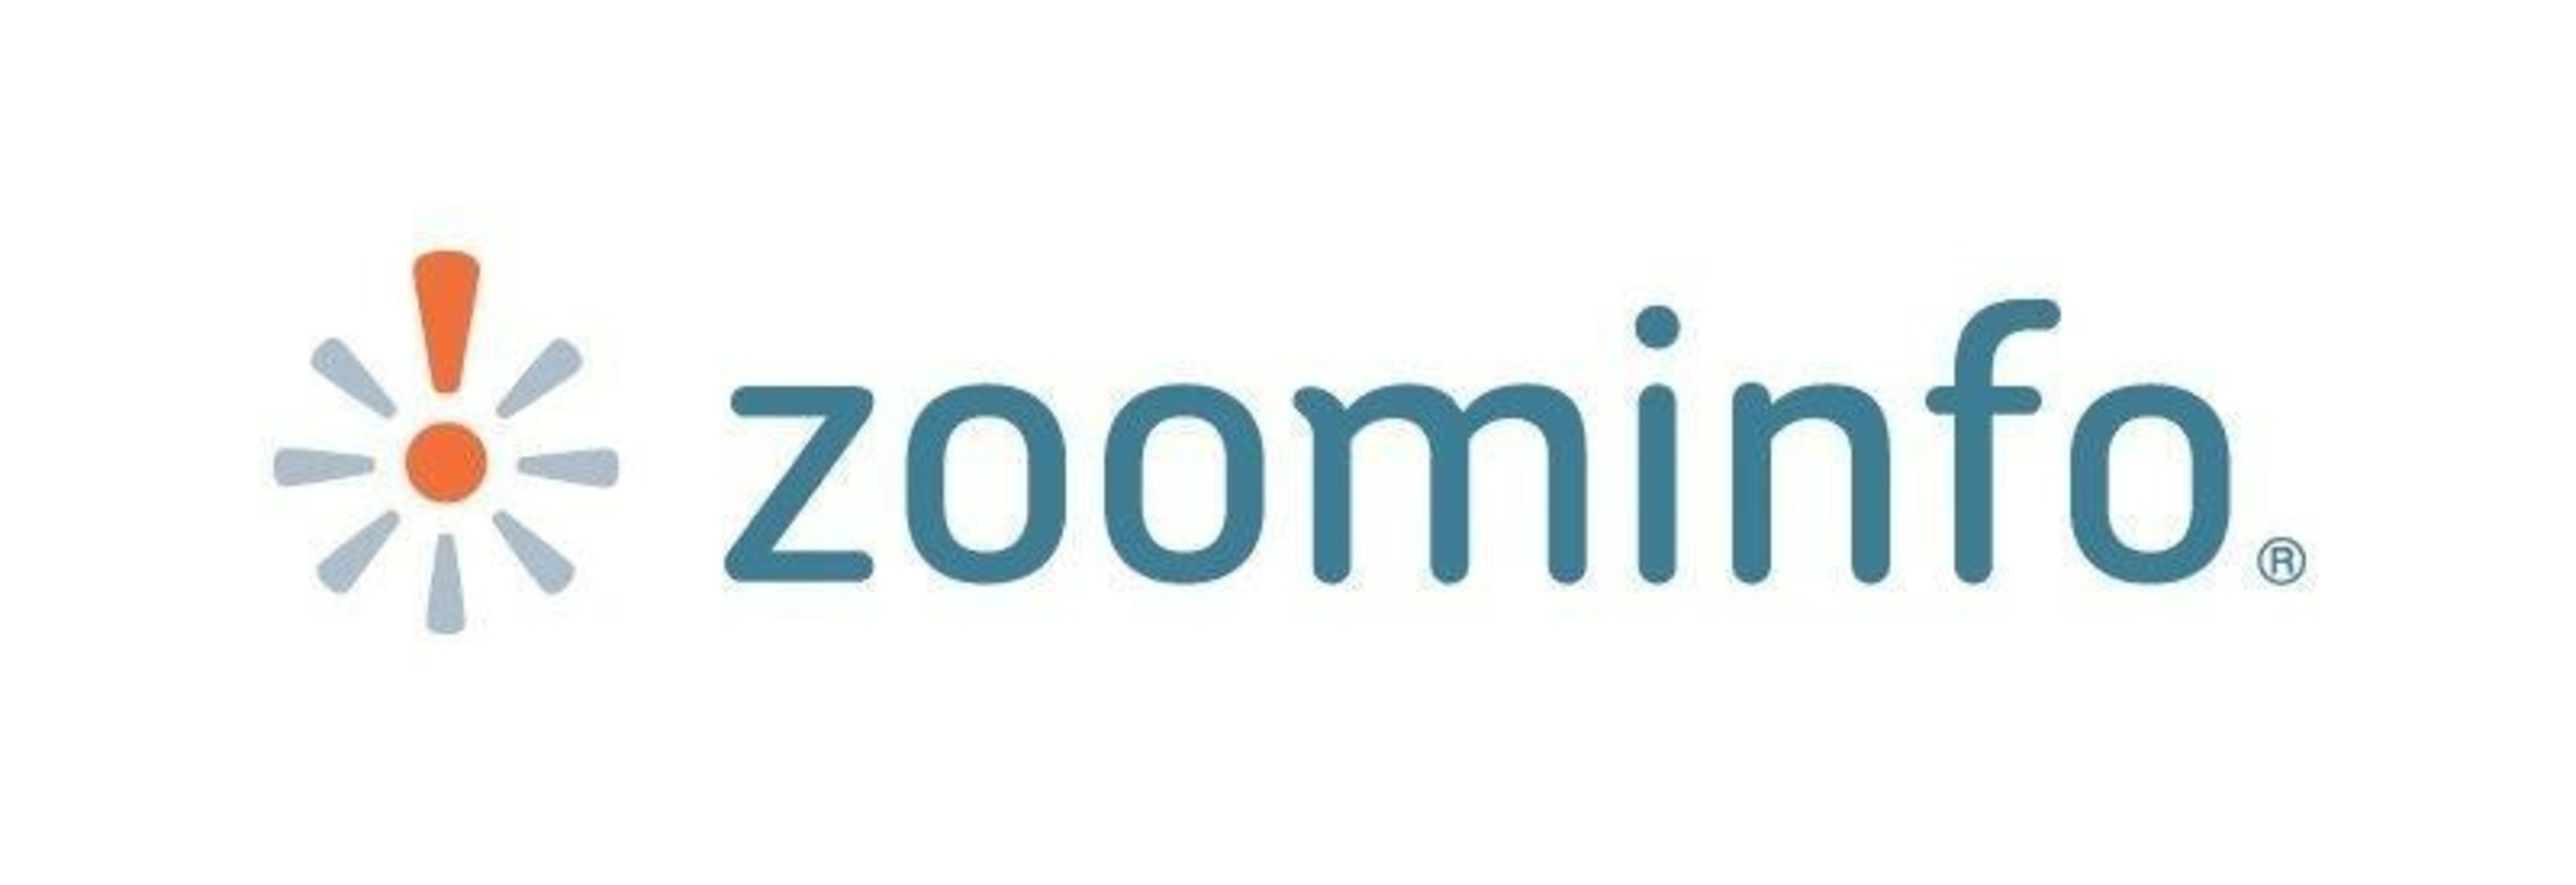 ZOOMINFO HAS BEEN NAMED TO THE 2016 INC. 5000 LIST